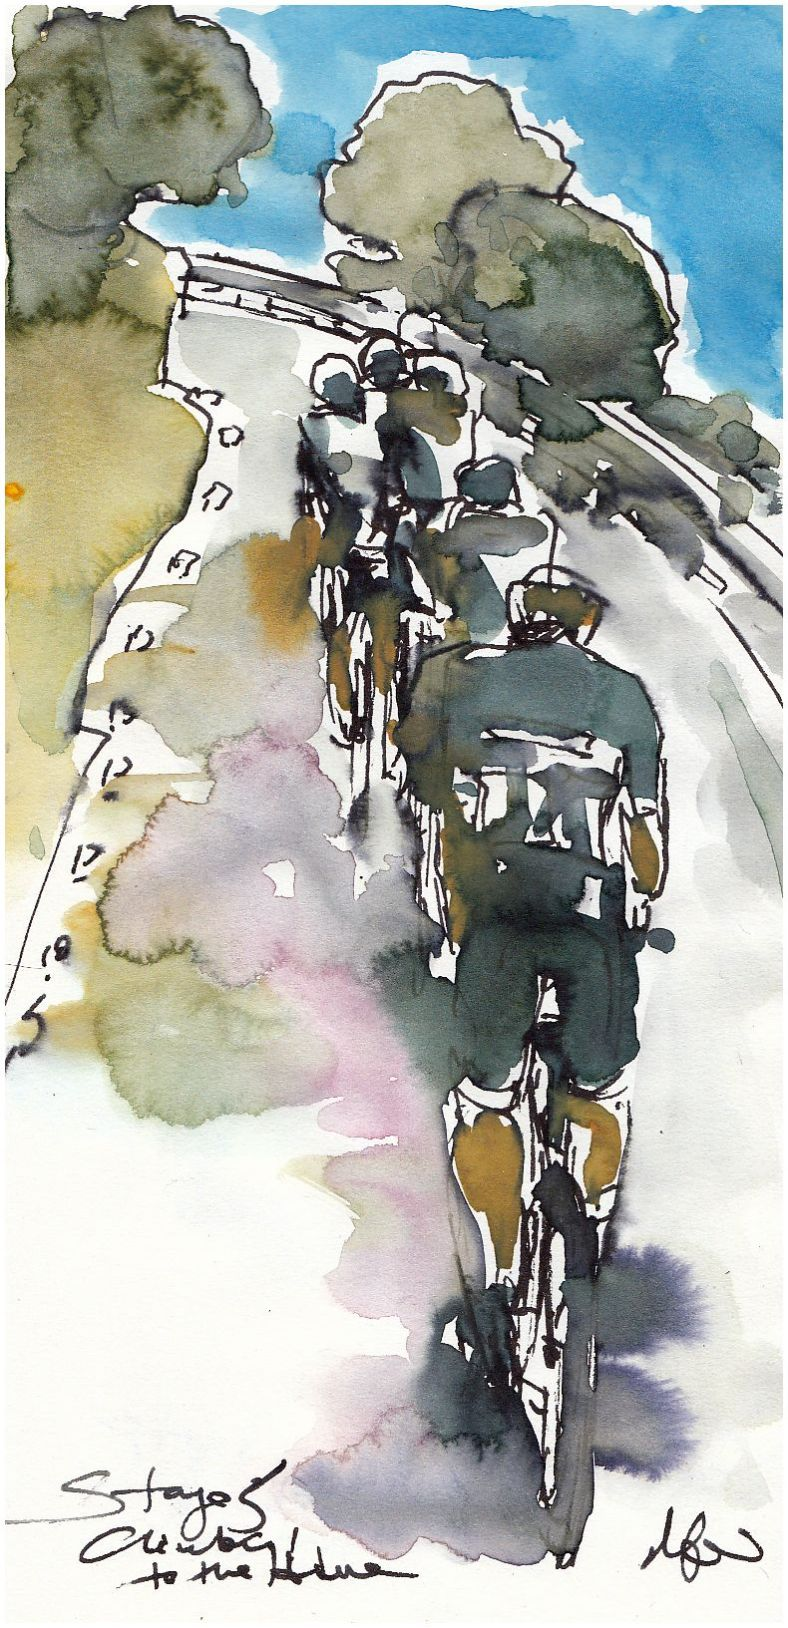 cycling, art, la vuelta, vuelta 2017